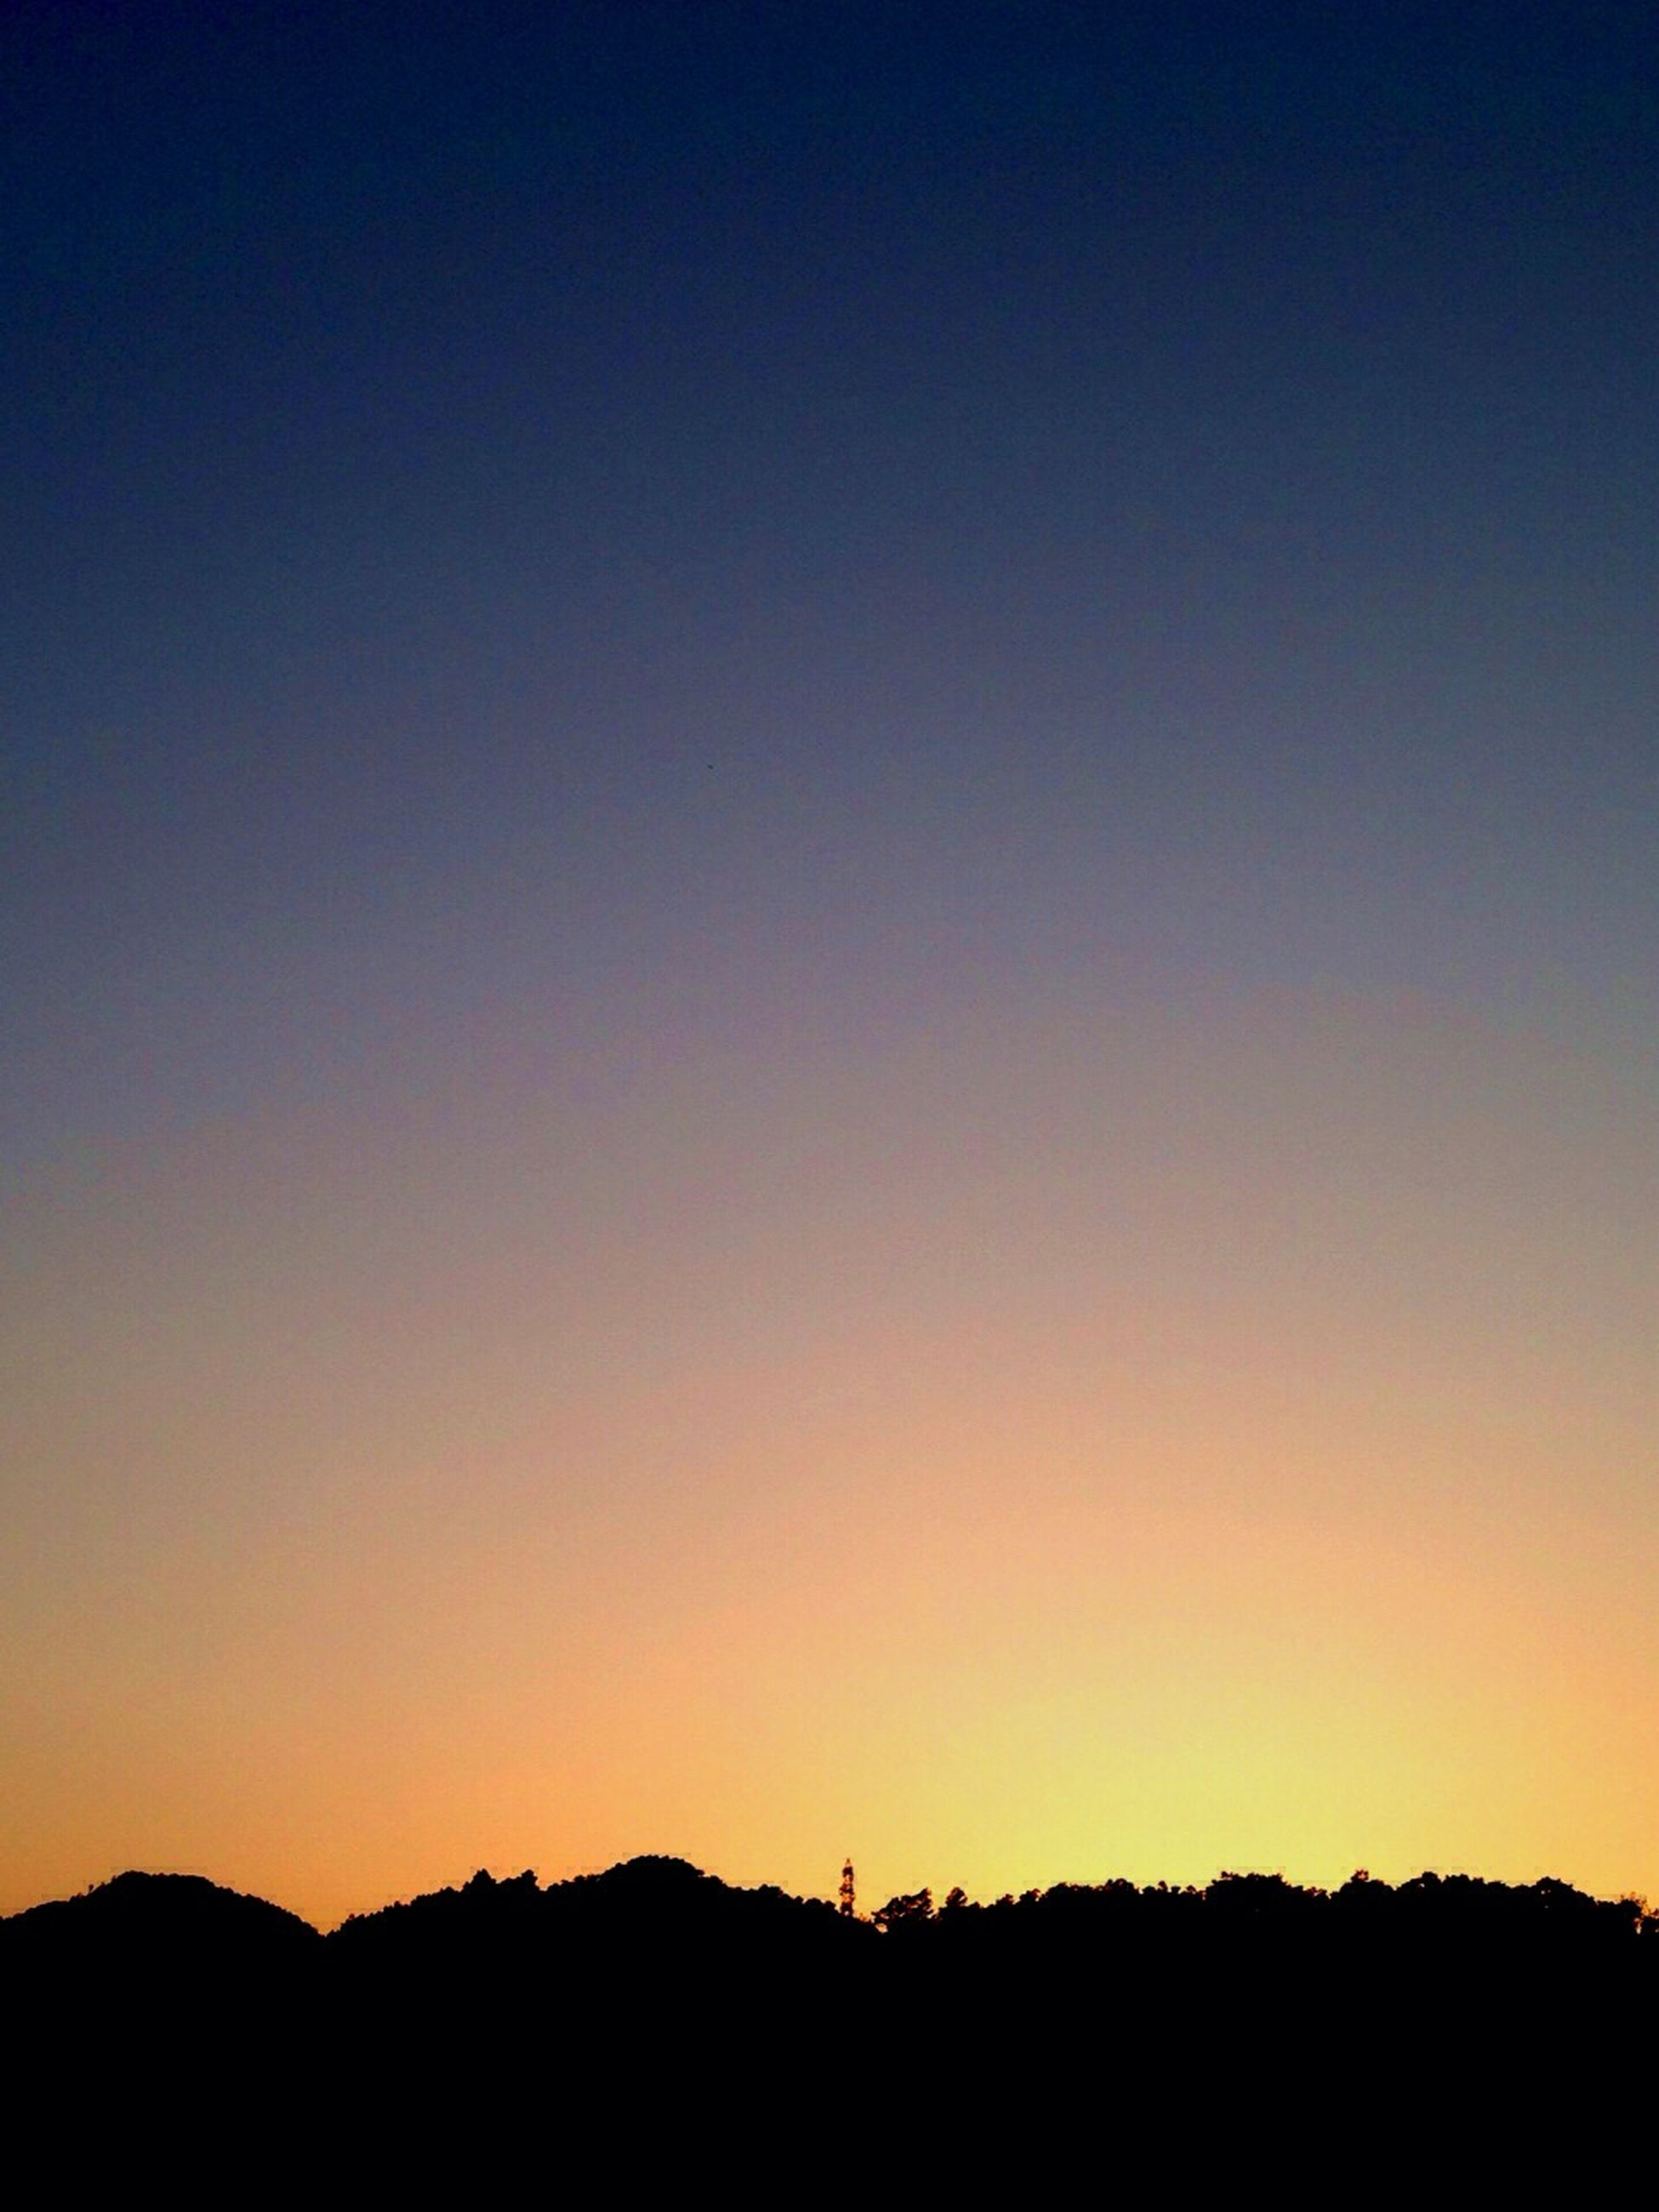 silhouette, copy space, sunset, clear sky, tranquil scene, scenics, tranquility, beauty in nature, landscape, mountain, nature, idyllic, dusk, blue, outline, mountain range, dark, outdoors, non-urban scene, orange color